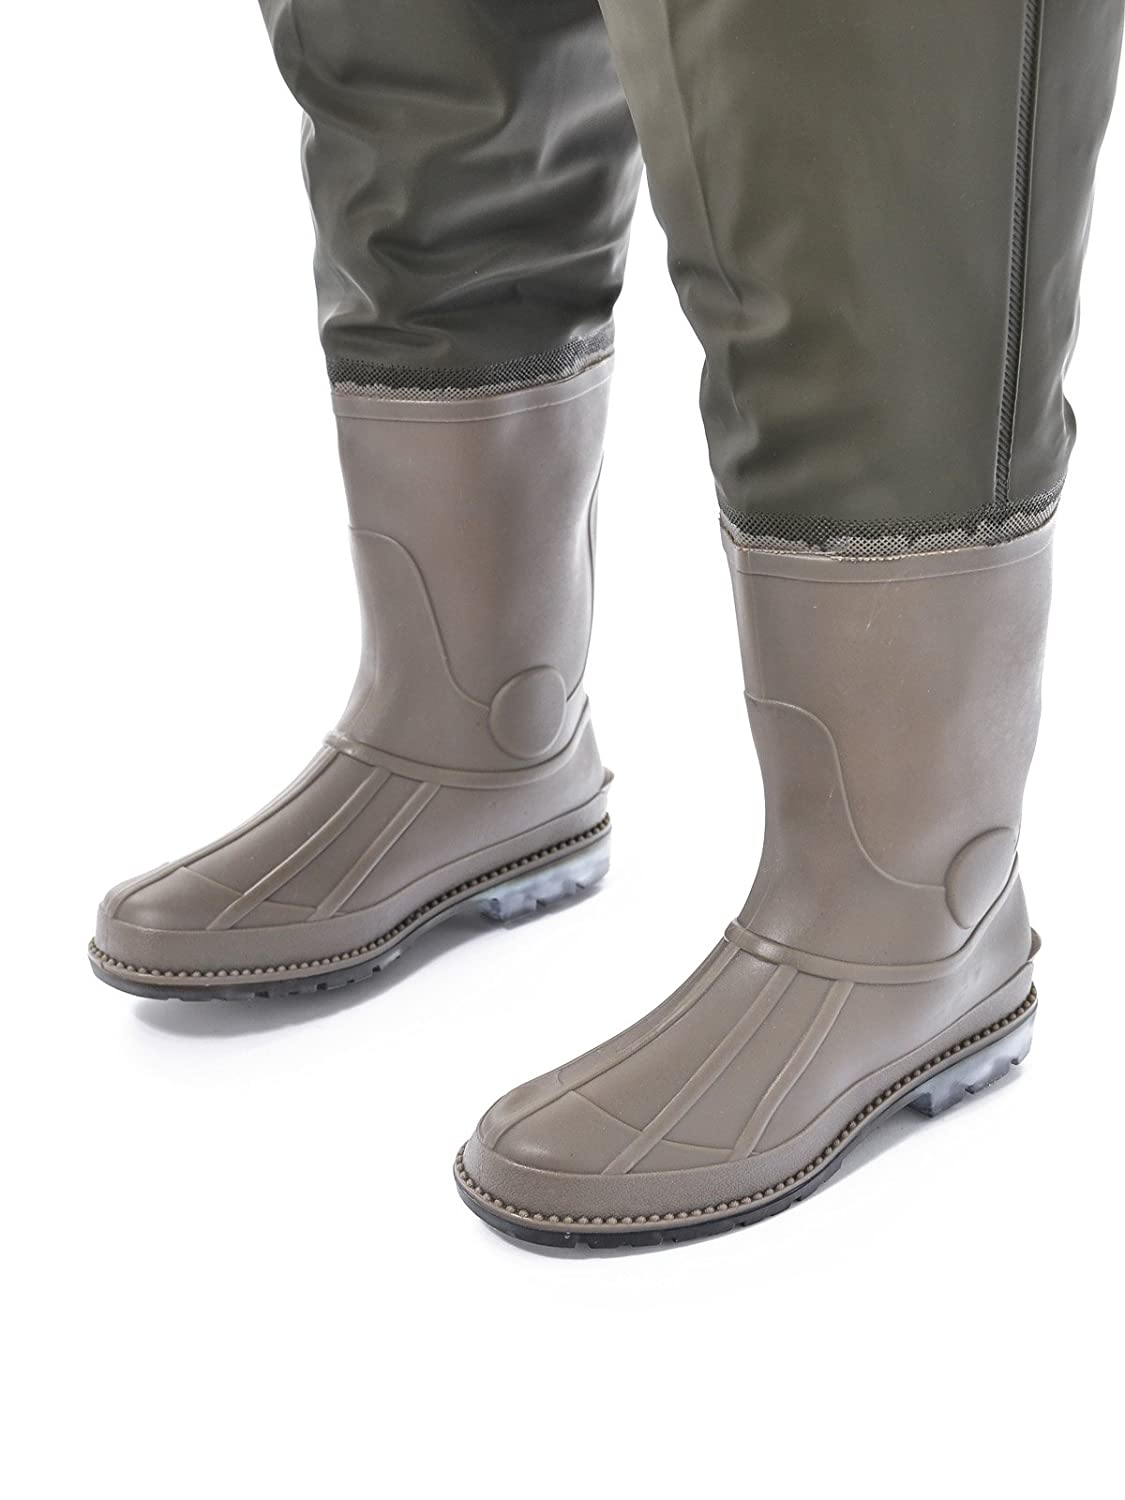 Hisea new rubber boot foot chest wader waterproof hunting for Fishing waders with boots